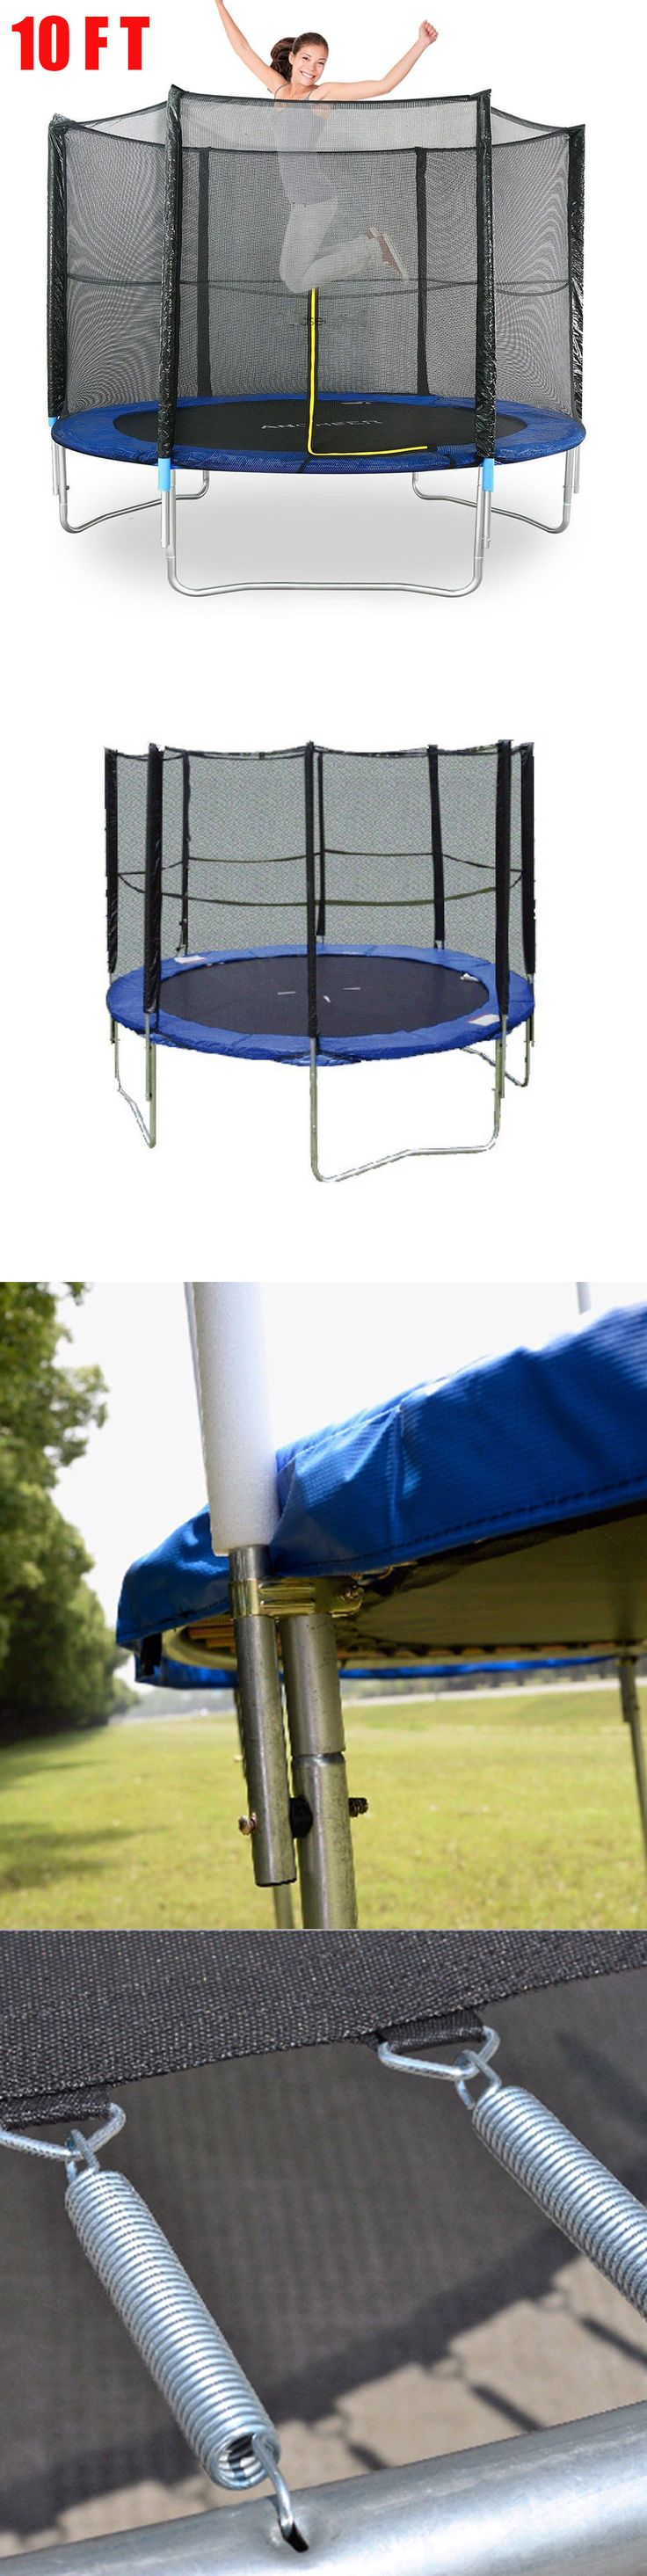 Trampolines 57275: Super Jumper 10 Ft. Trampoline With Enclosure, Blue, 9 - 13 Foot Oy -> BUY IT NOW ONLY: $163.95 on eBay!